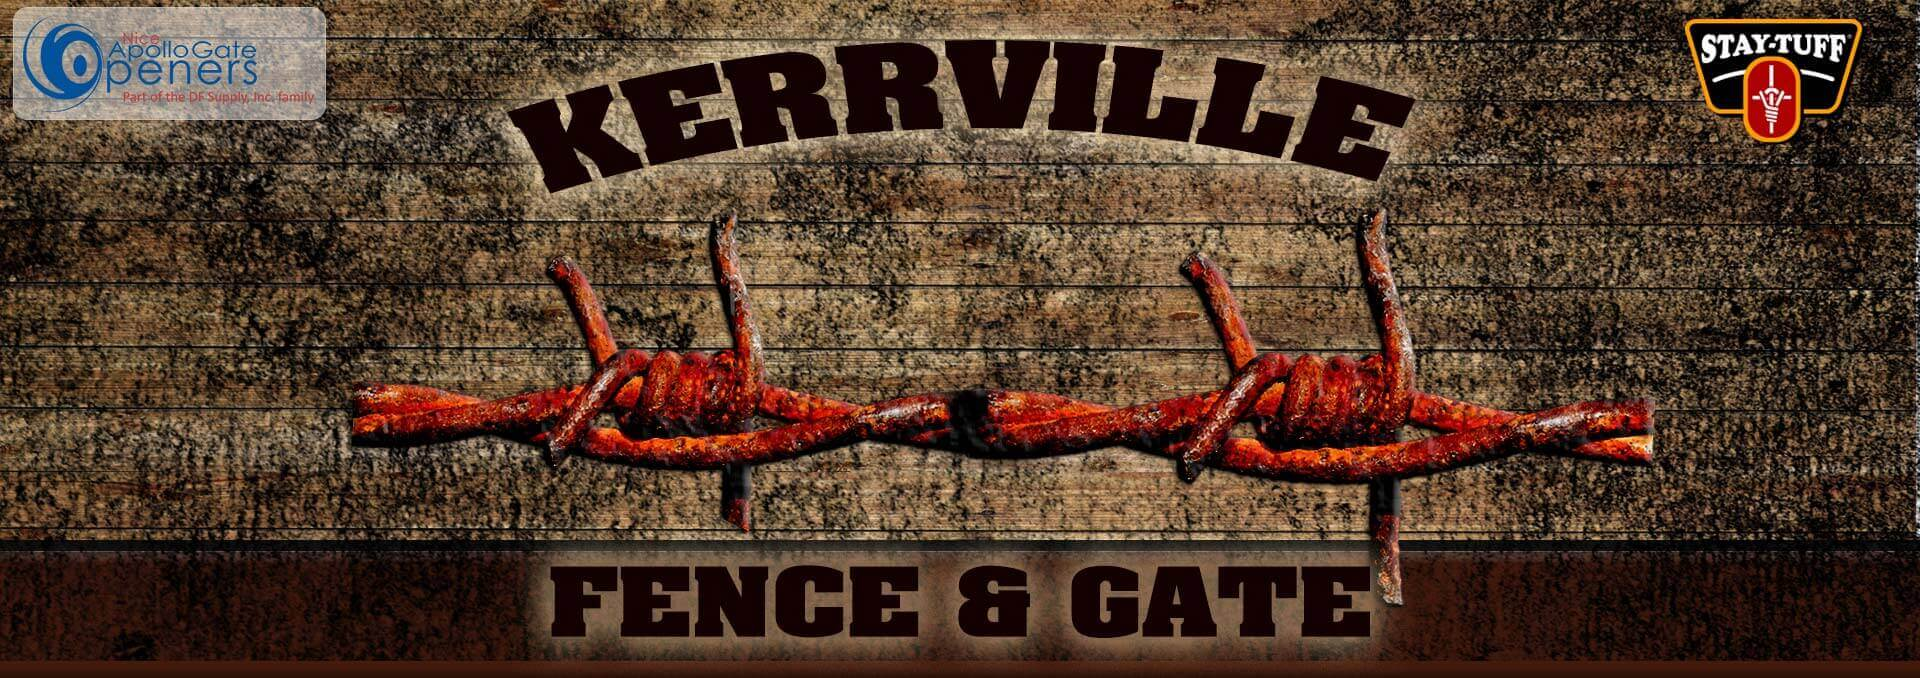 Kerrville Fence & Gate serves the Texas Hill Country